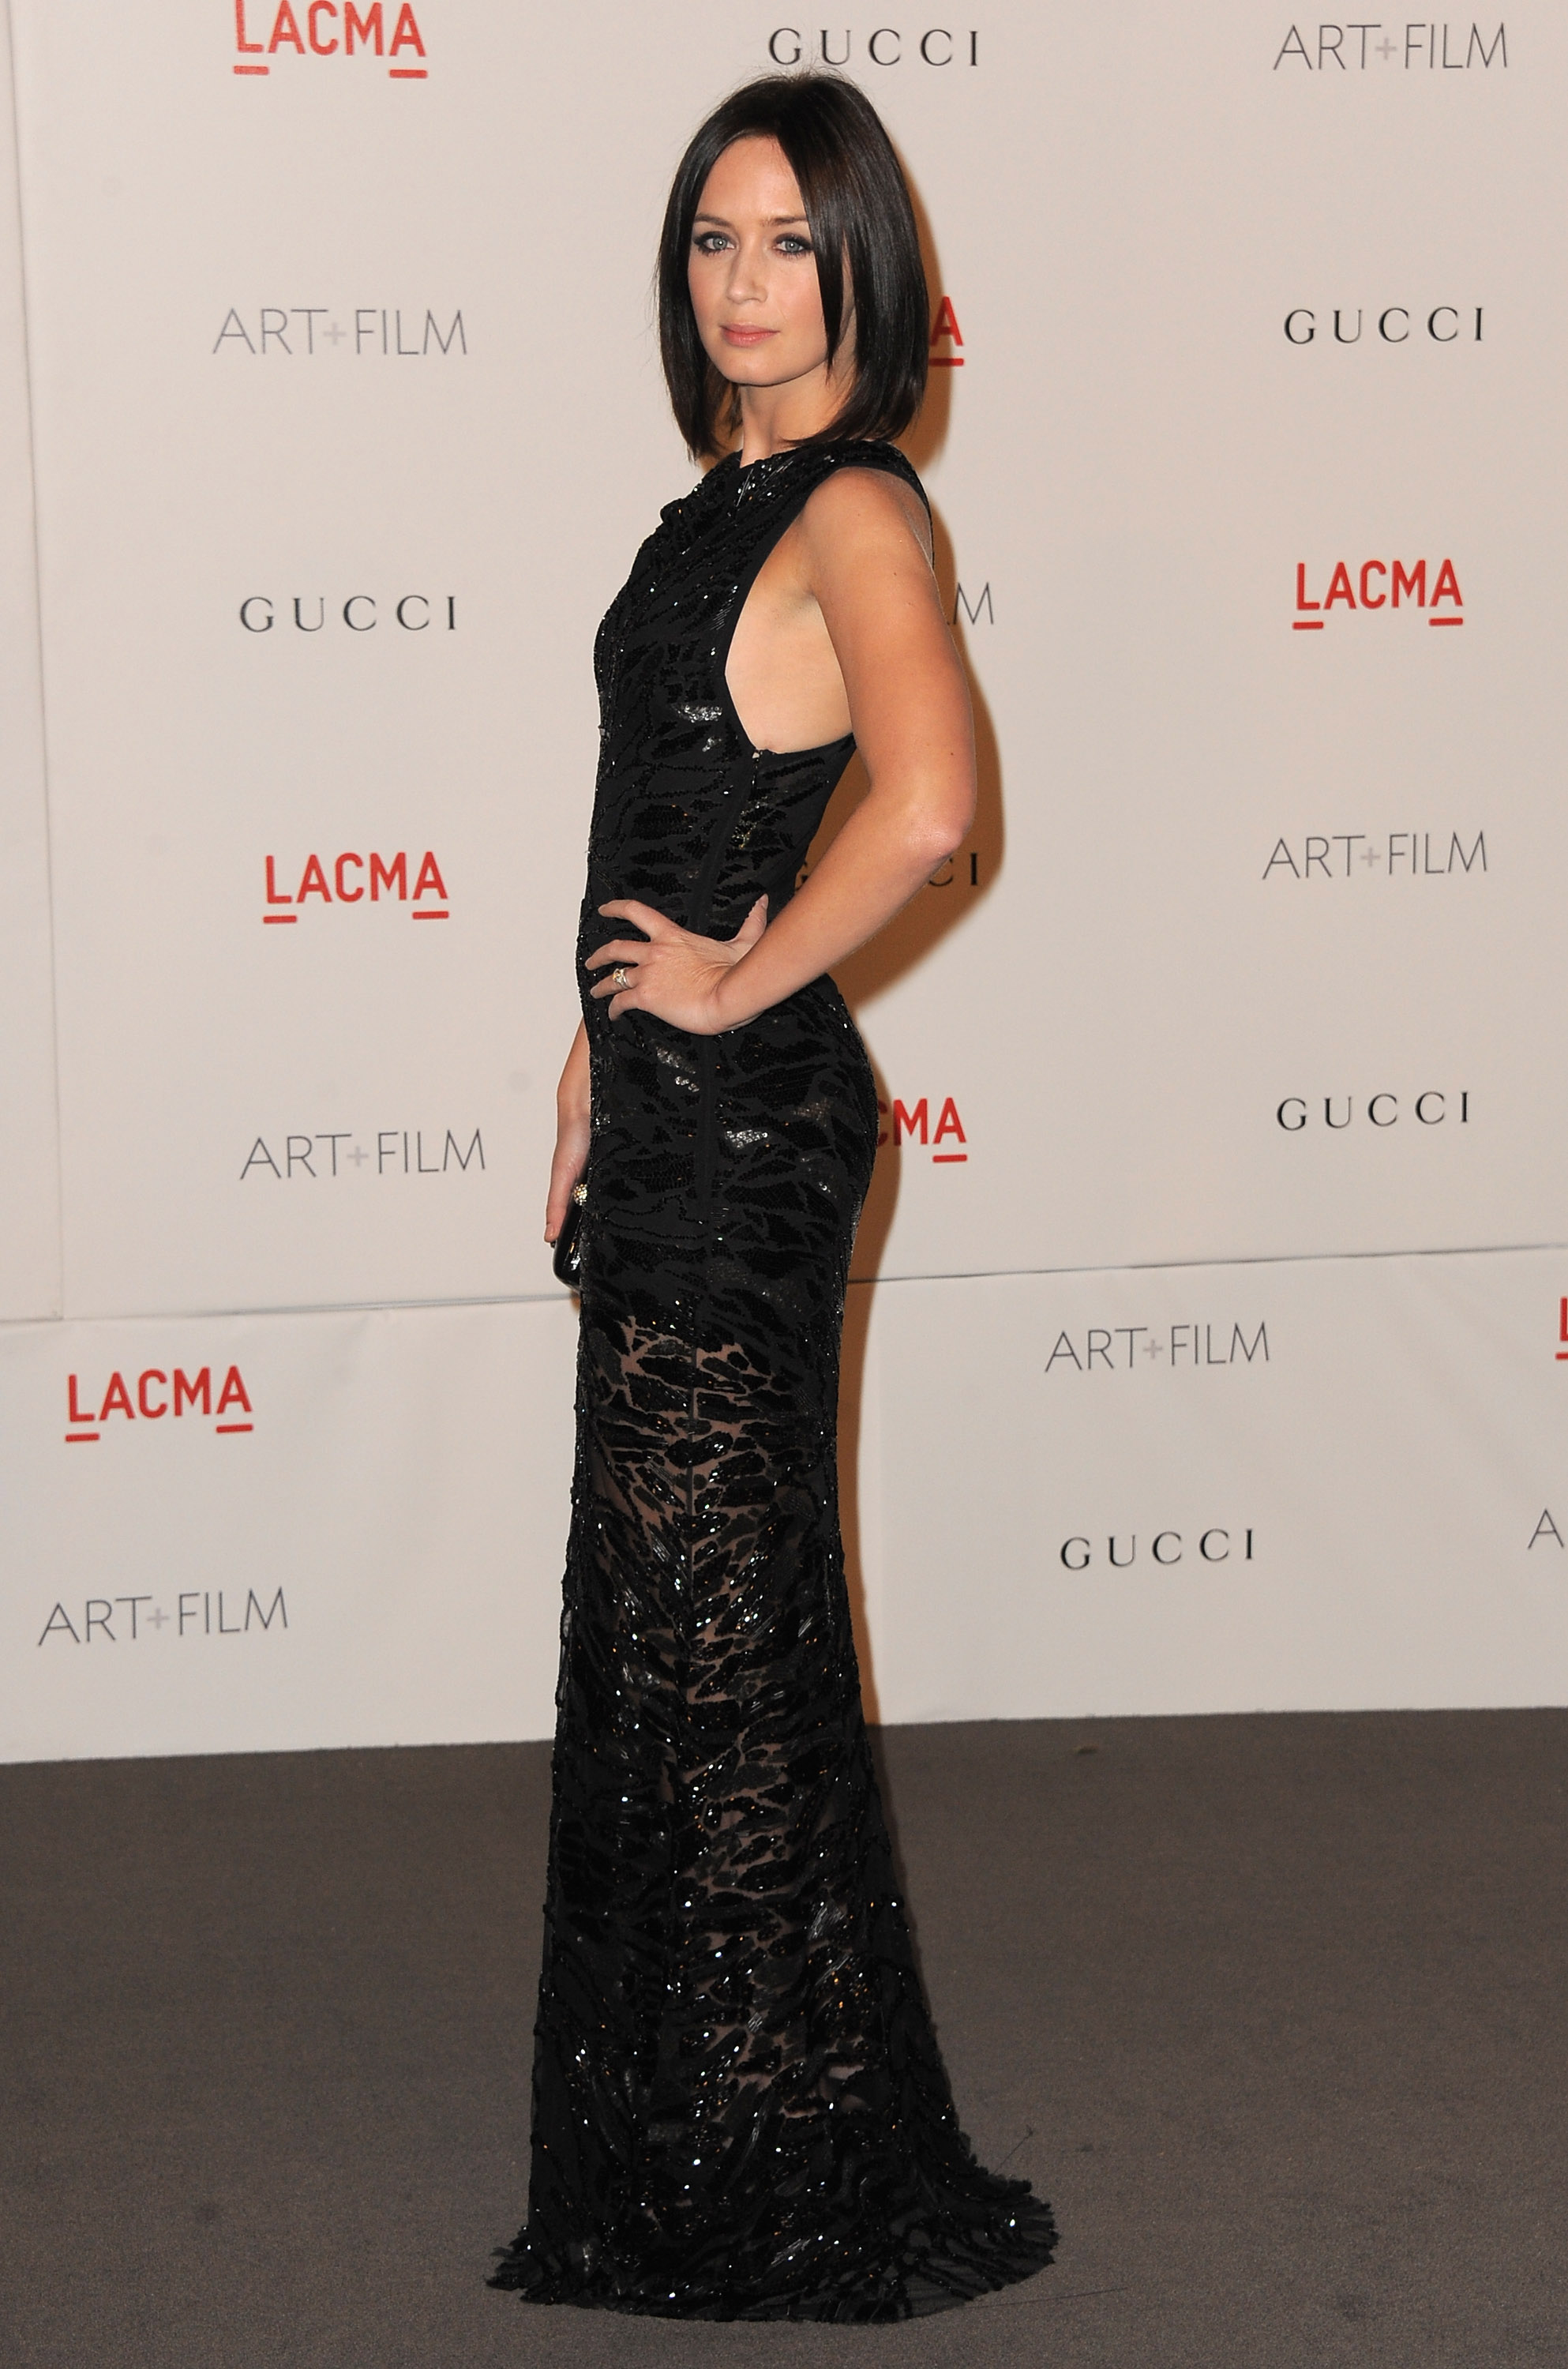 Emily Blunt in a sheer black dress.